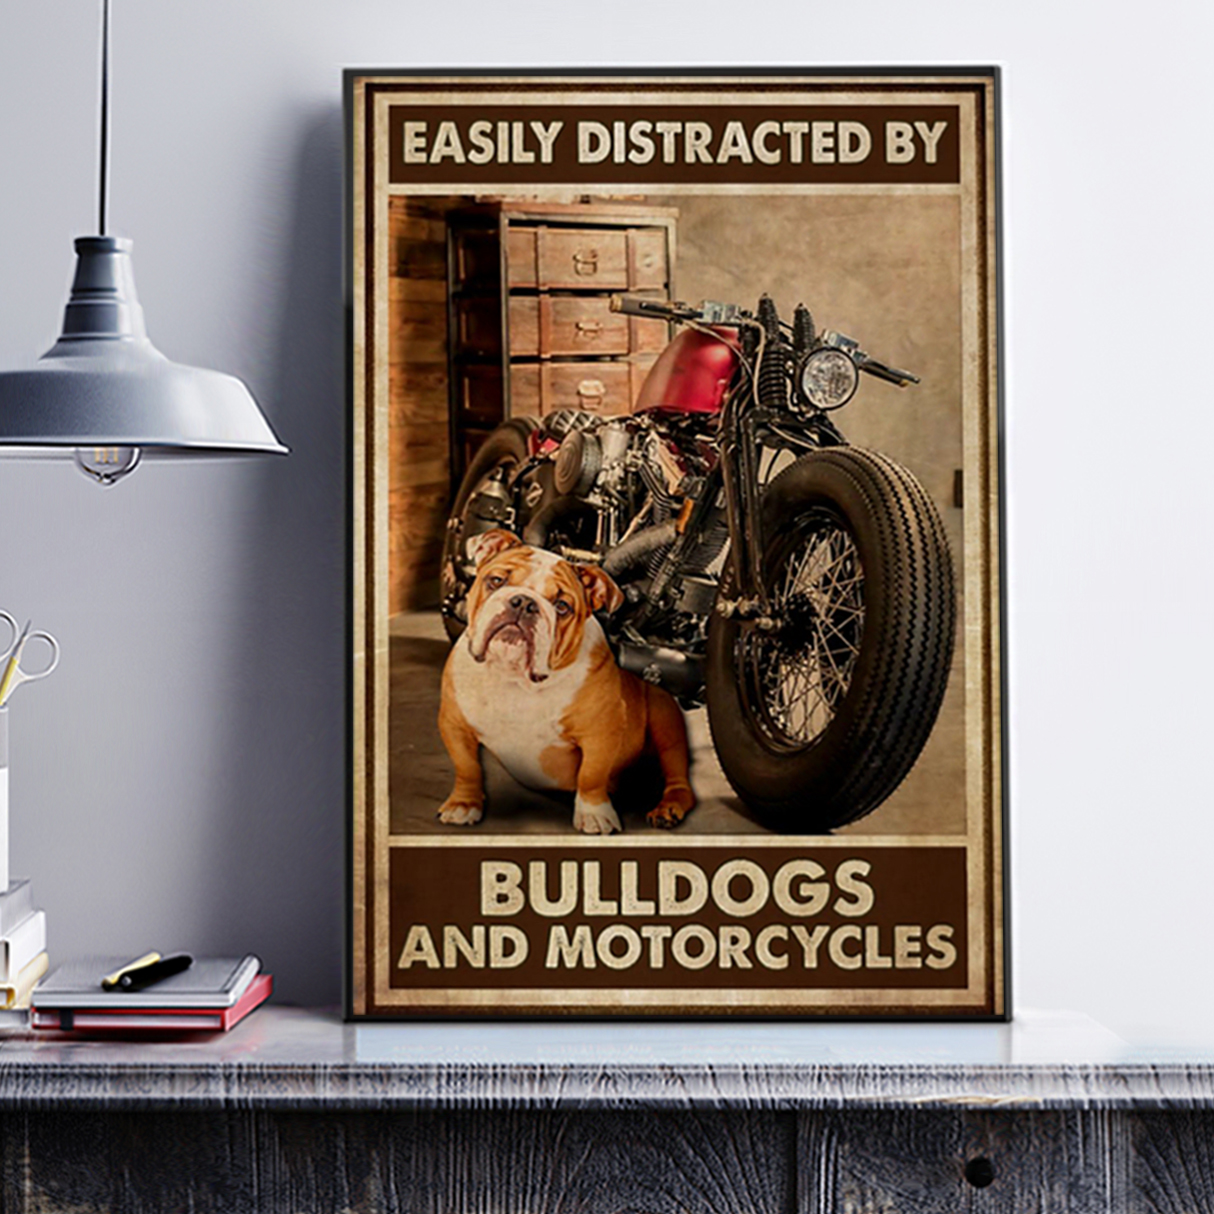 Easily distracted by bulldog and motorcycles poster A1